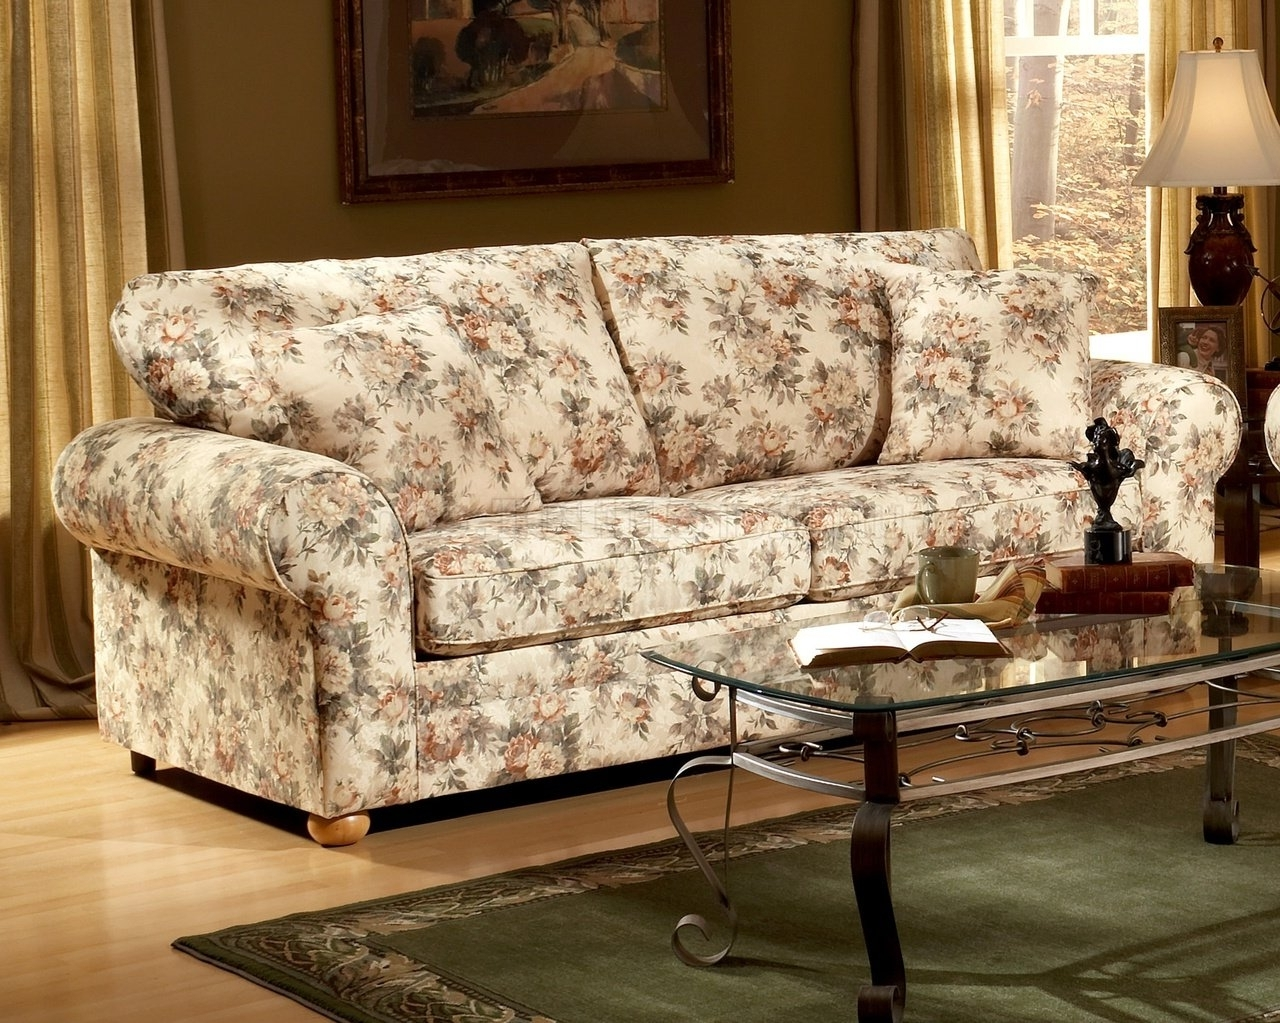 2018 Pattern Fabric Traditional Sofa & Loveseat Set Pertaining To Traditional Fabric Sofas (View 3 of 15)